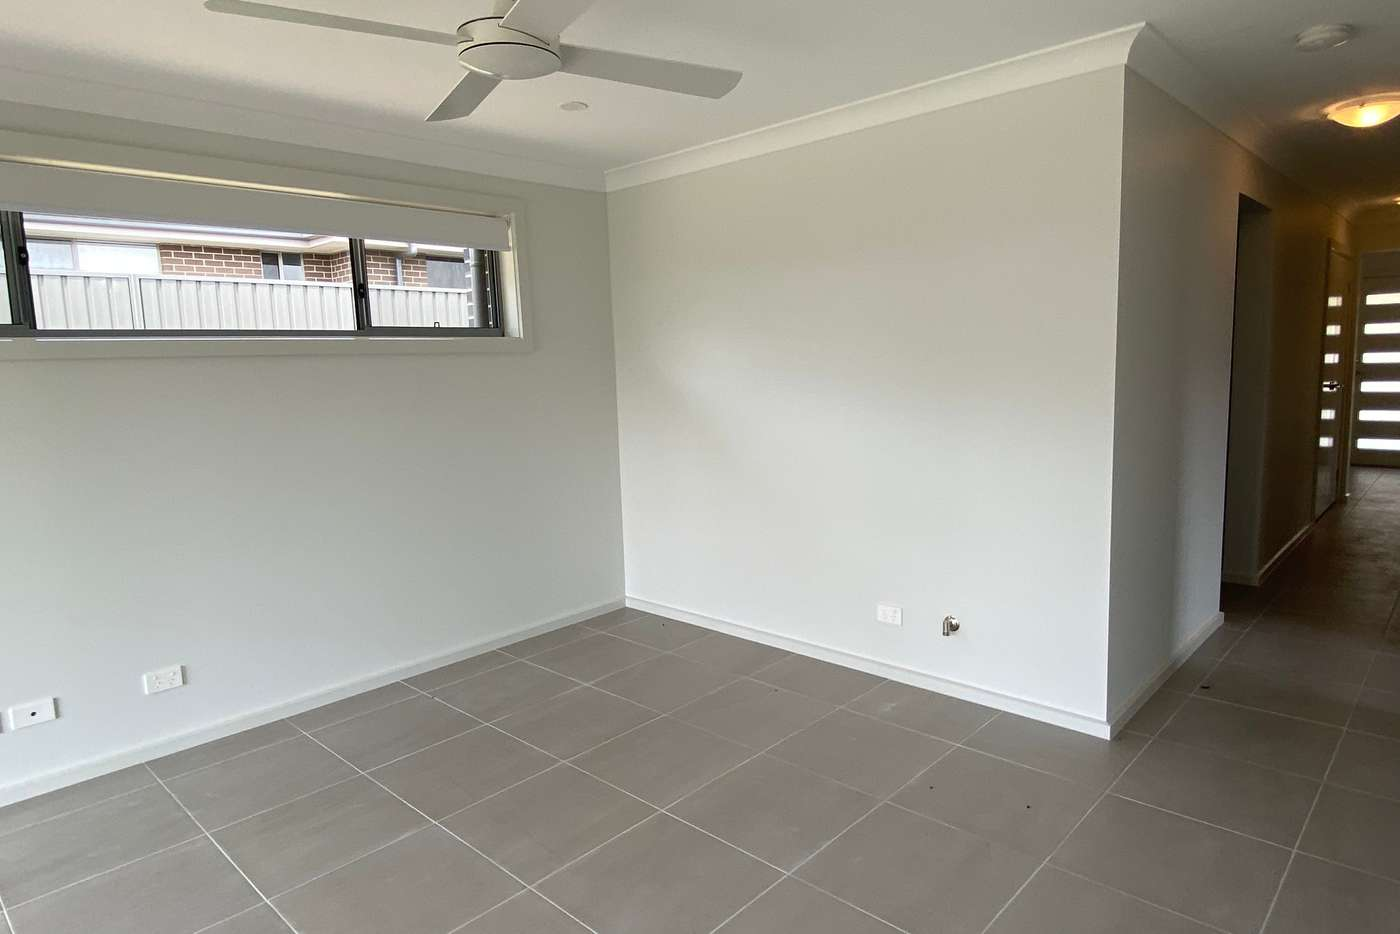 Sixth view of Homely house listing, 2b Rae Street, Cessnock NSW 2325